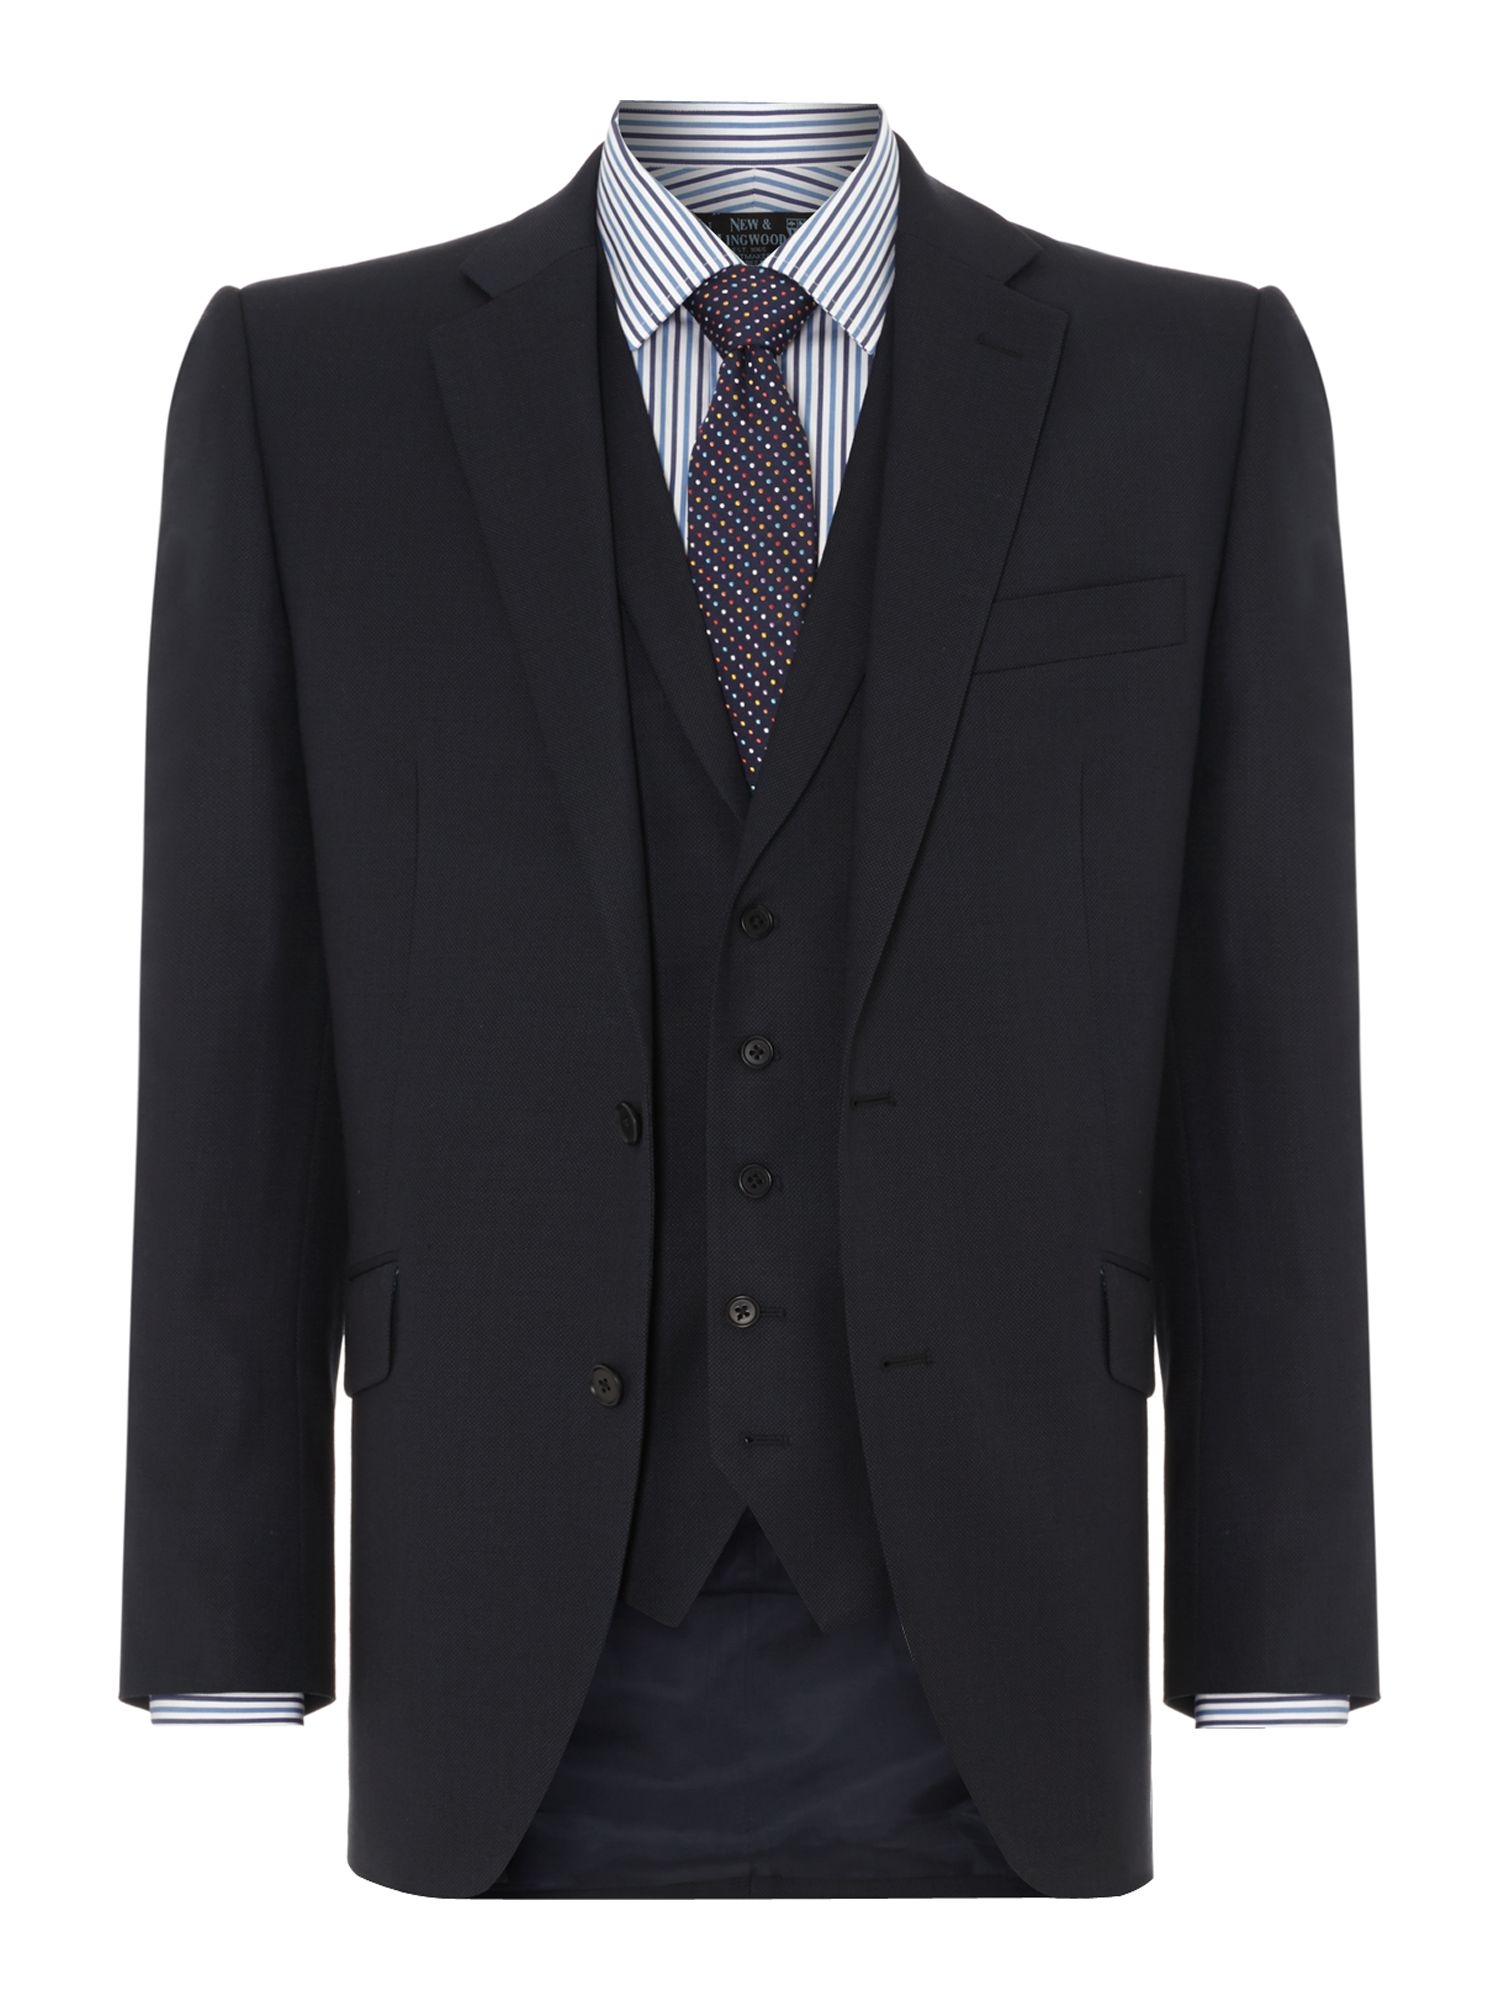 Richmond birdseye suit jacket